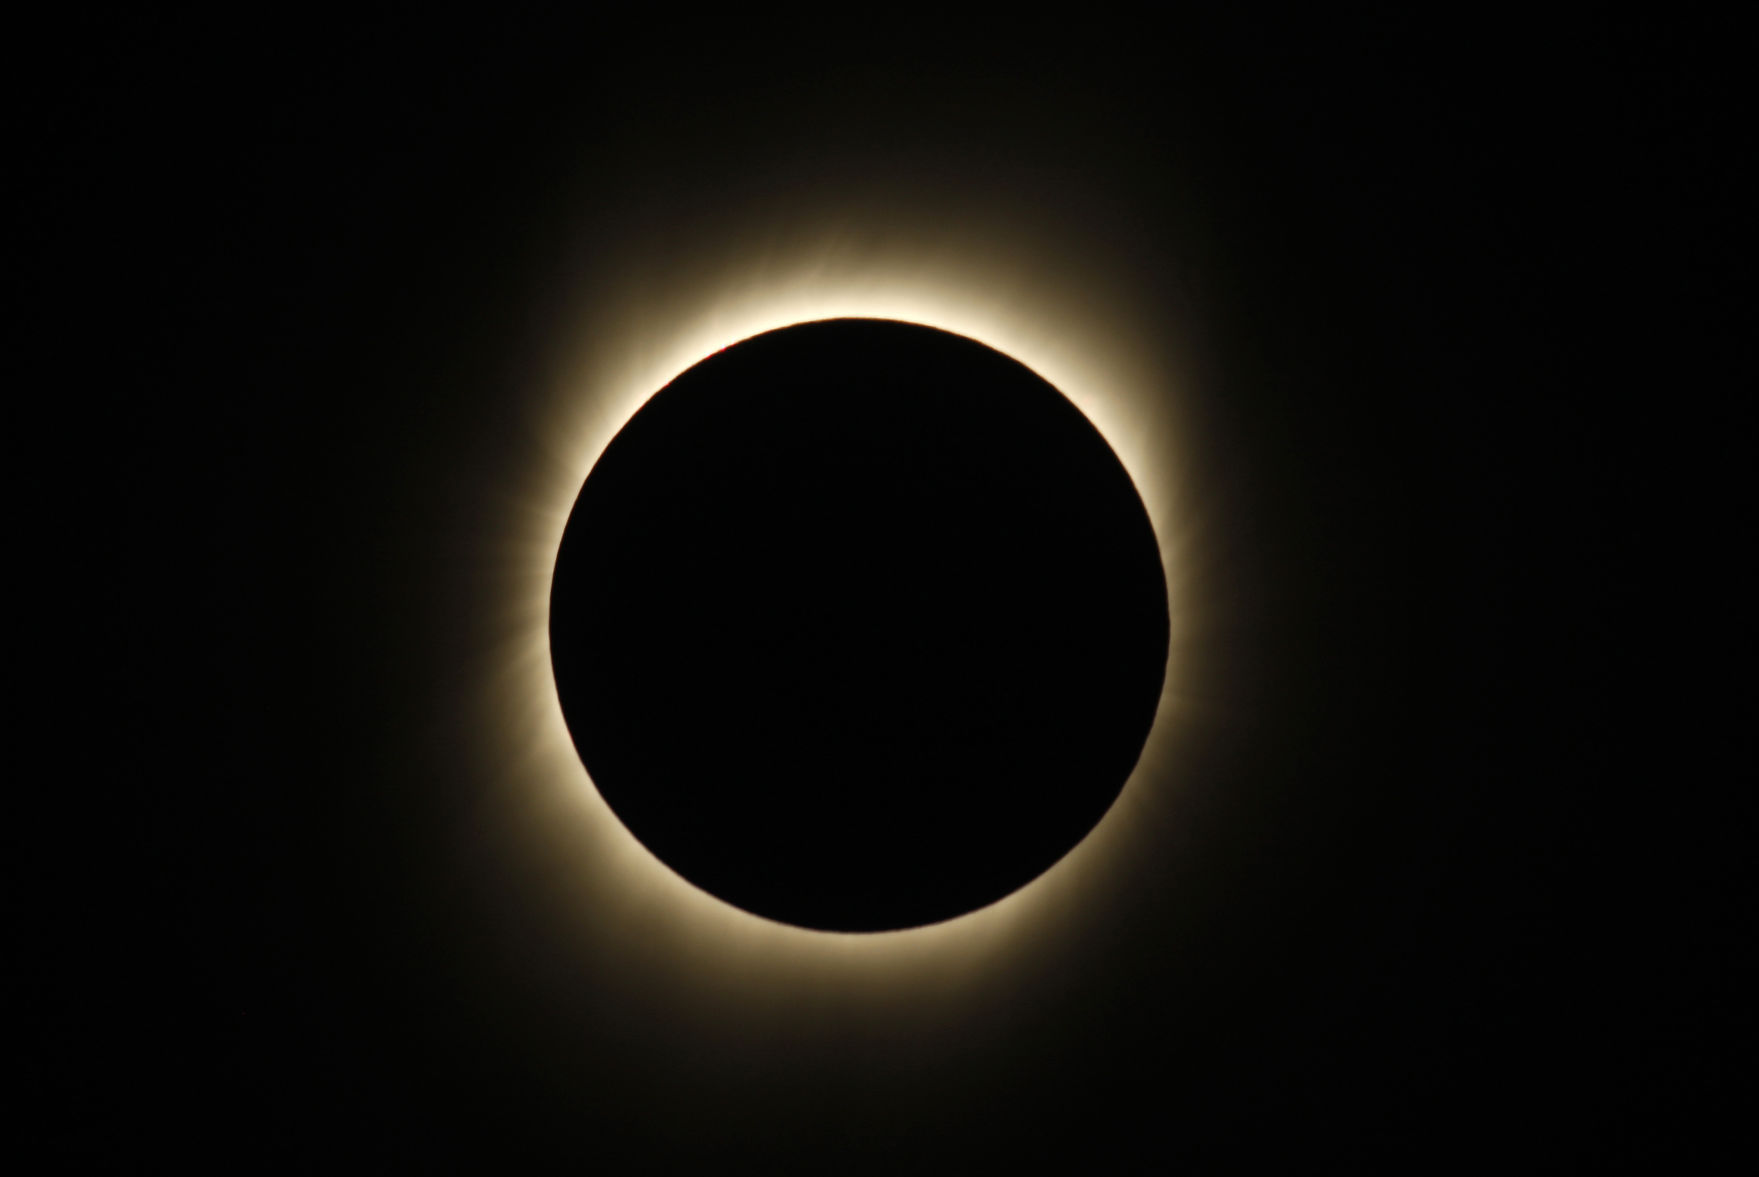 Solar eclipse 2017: Where to watch in the Austin area